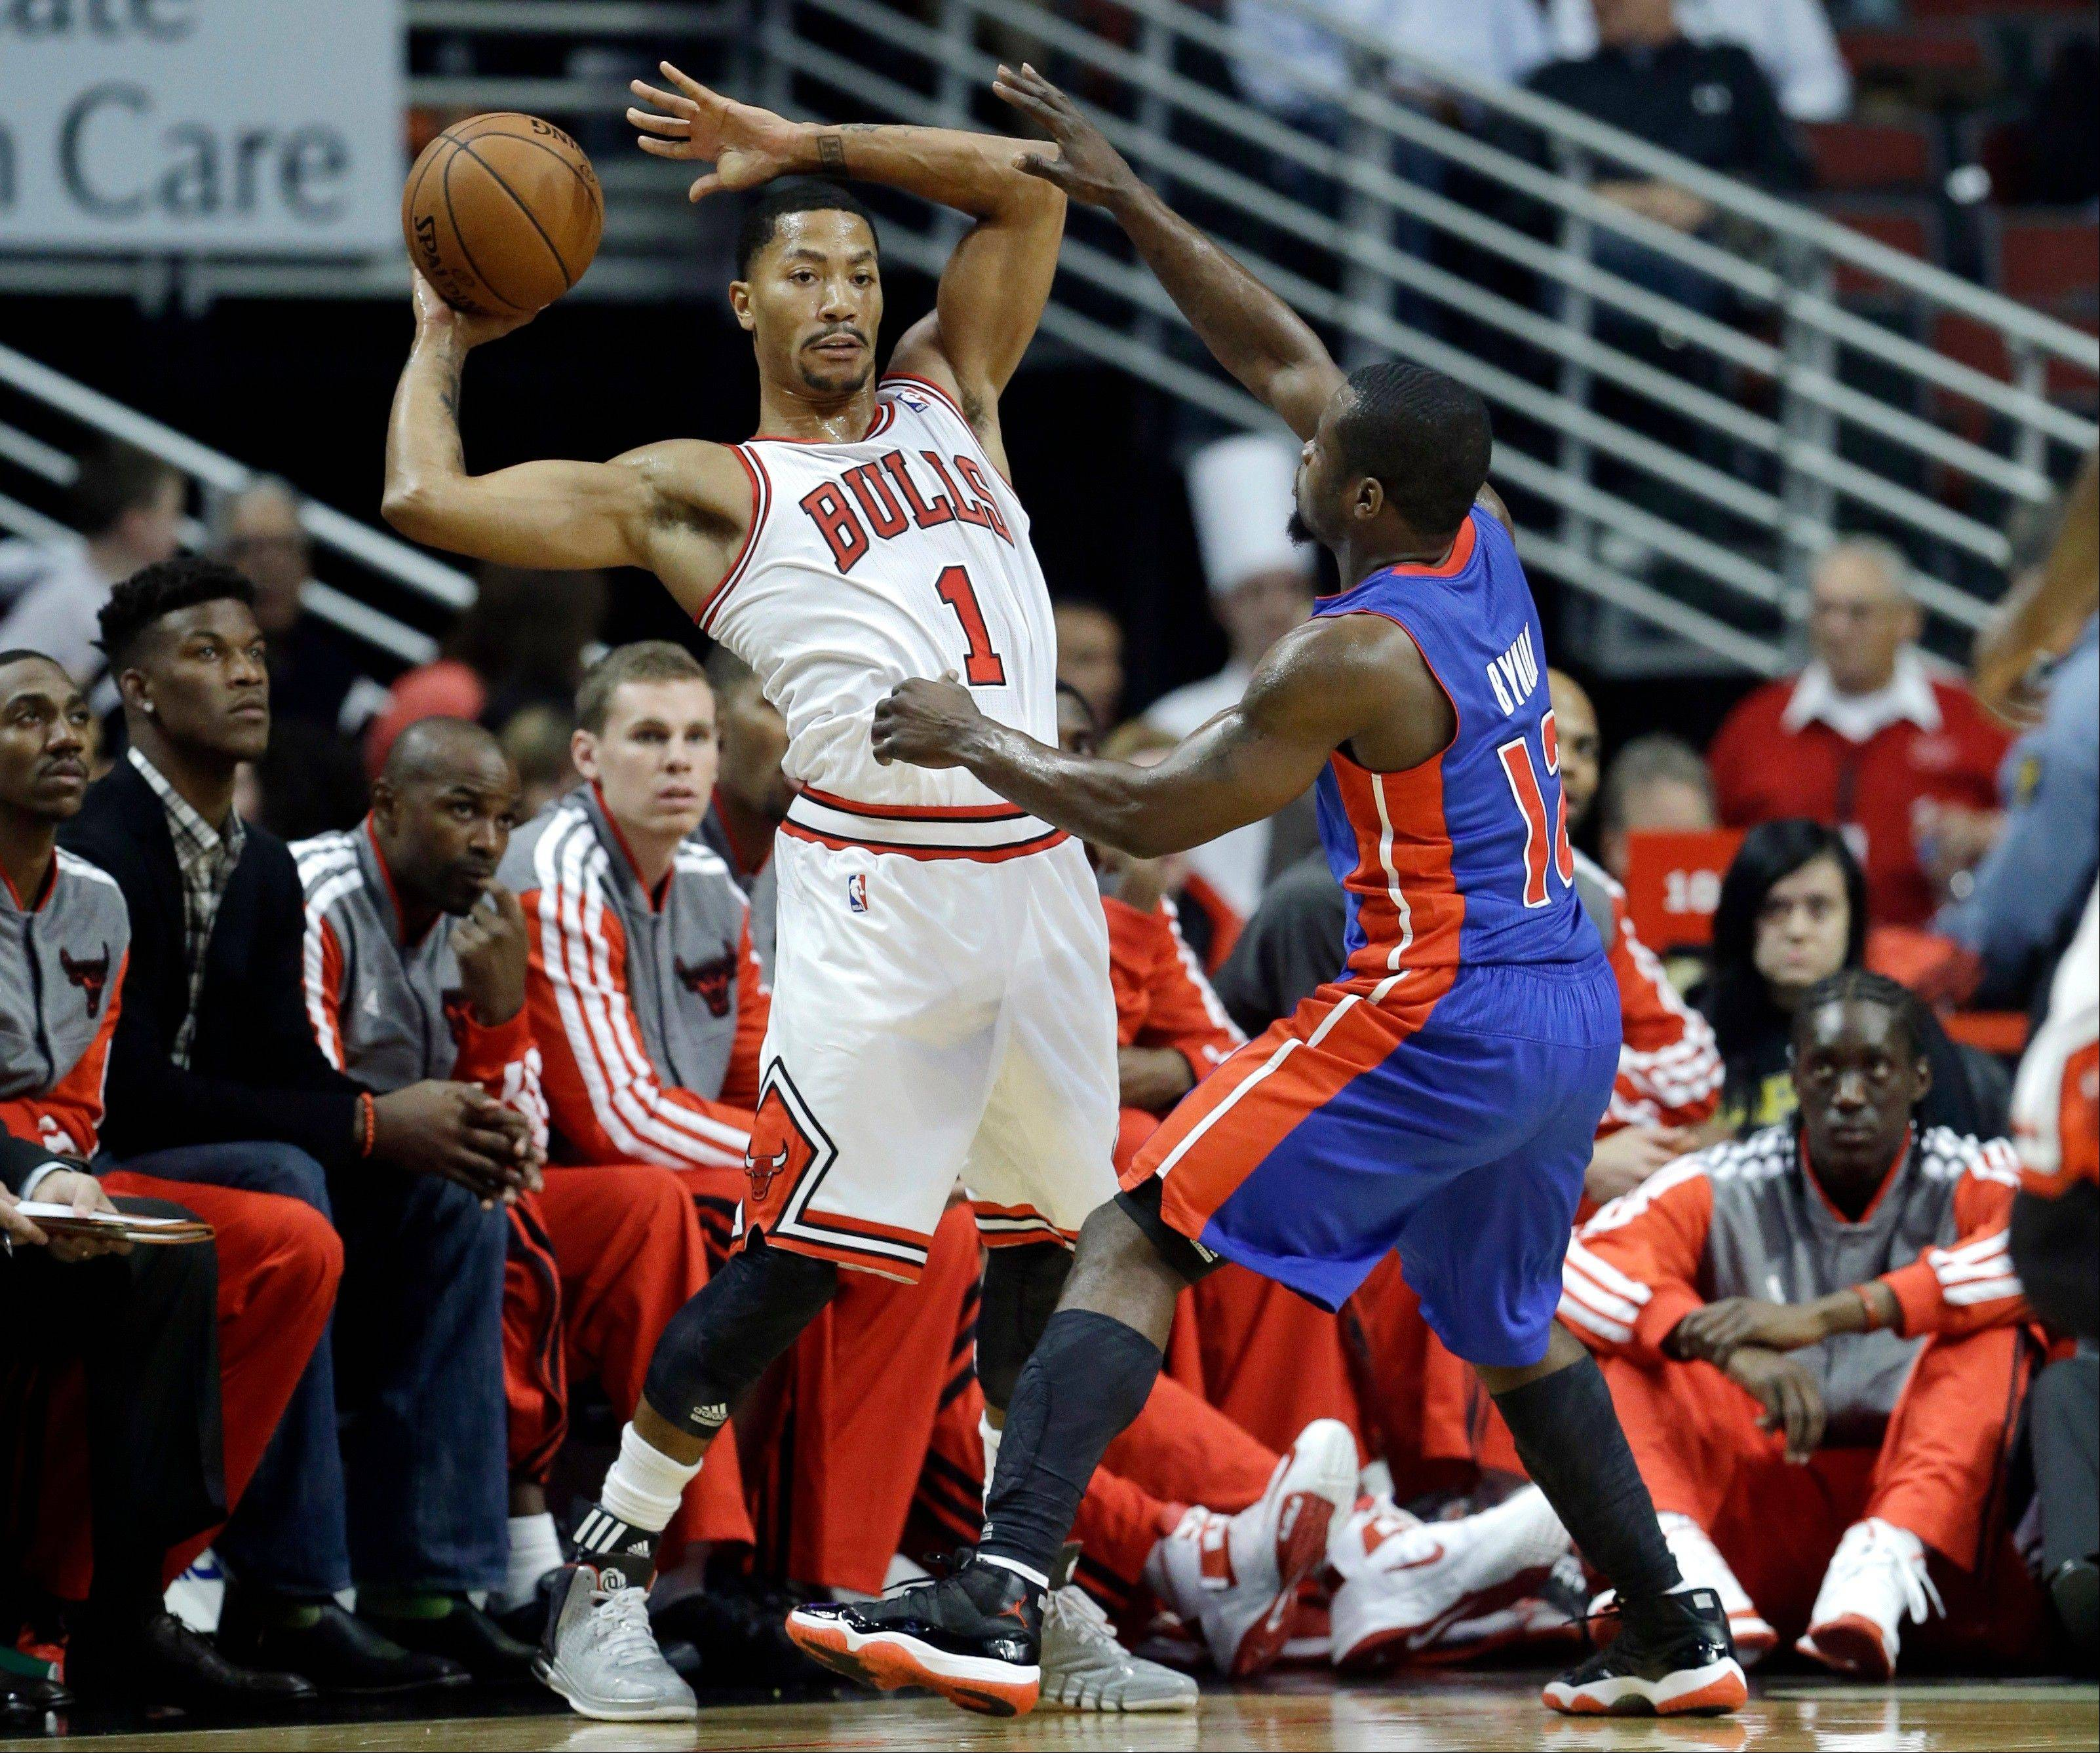 Bulls guard Derrick Rose looks to pass as Pistons guard Will Bynum defends during the first half of Wednesday's preseason game in Chicago.